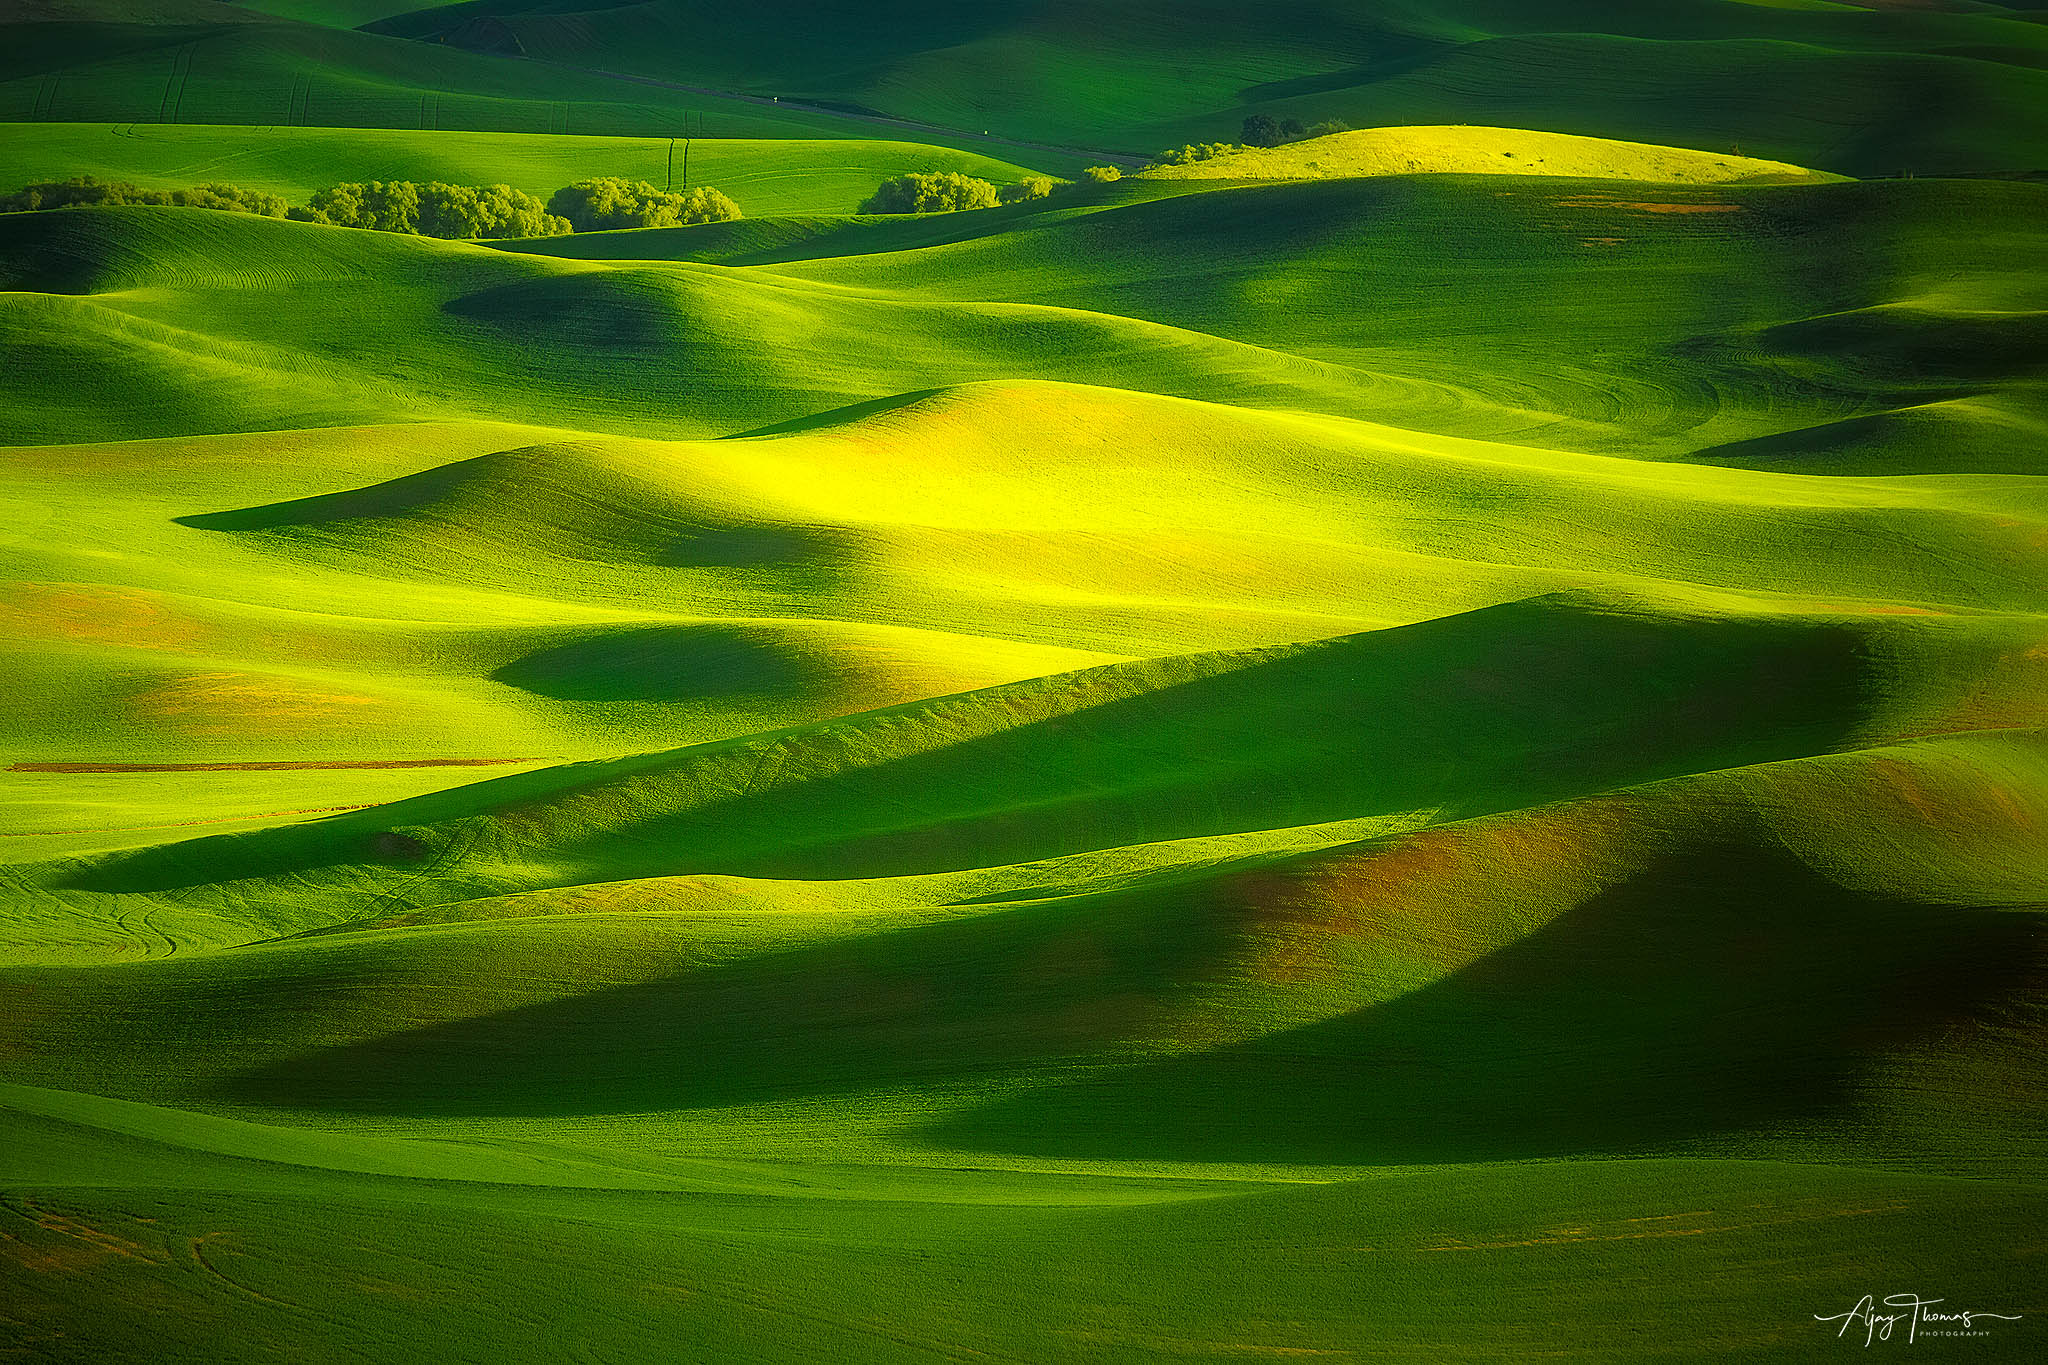 Palouse is an agrarian region in north eastern Washington near Idaho border. It is also home to some of the most productive dry...